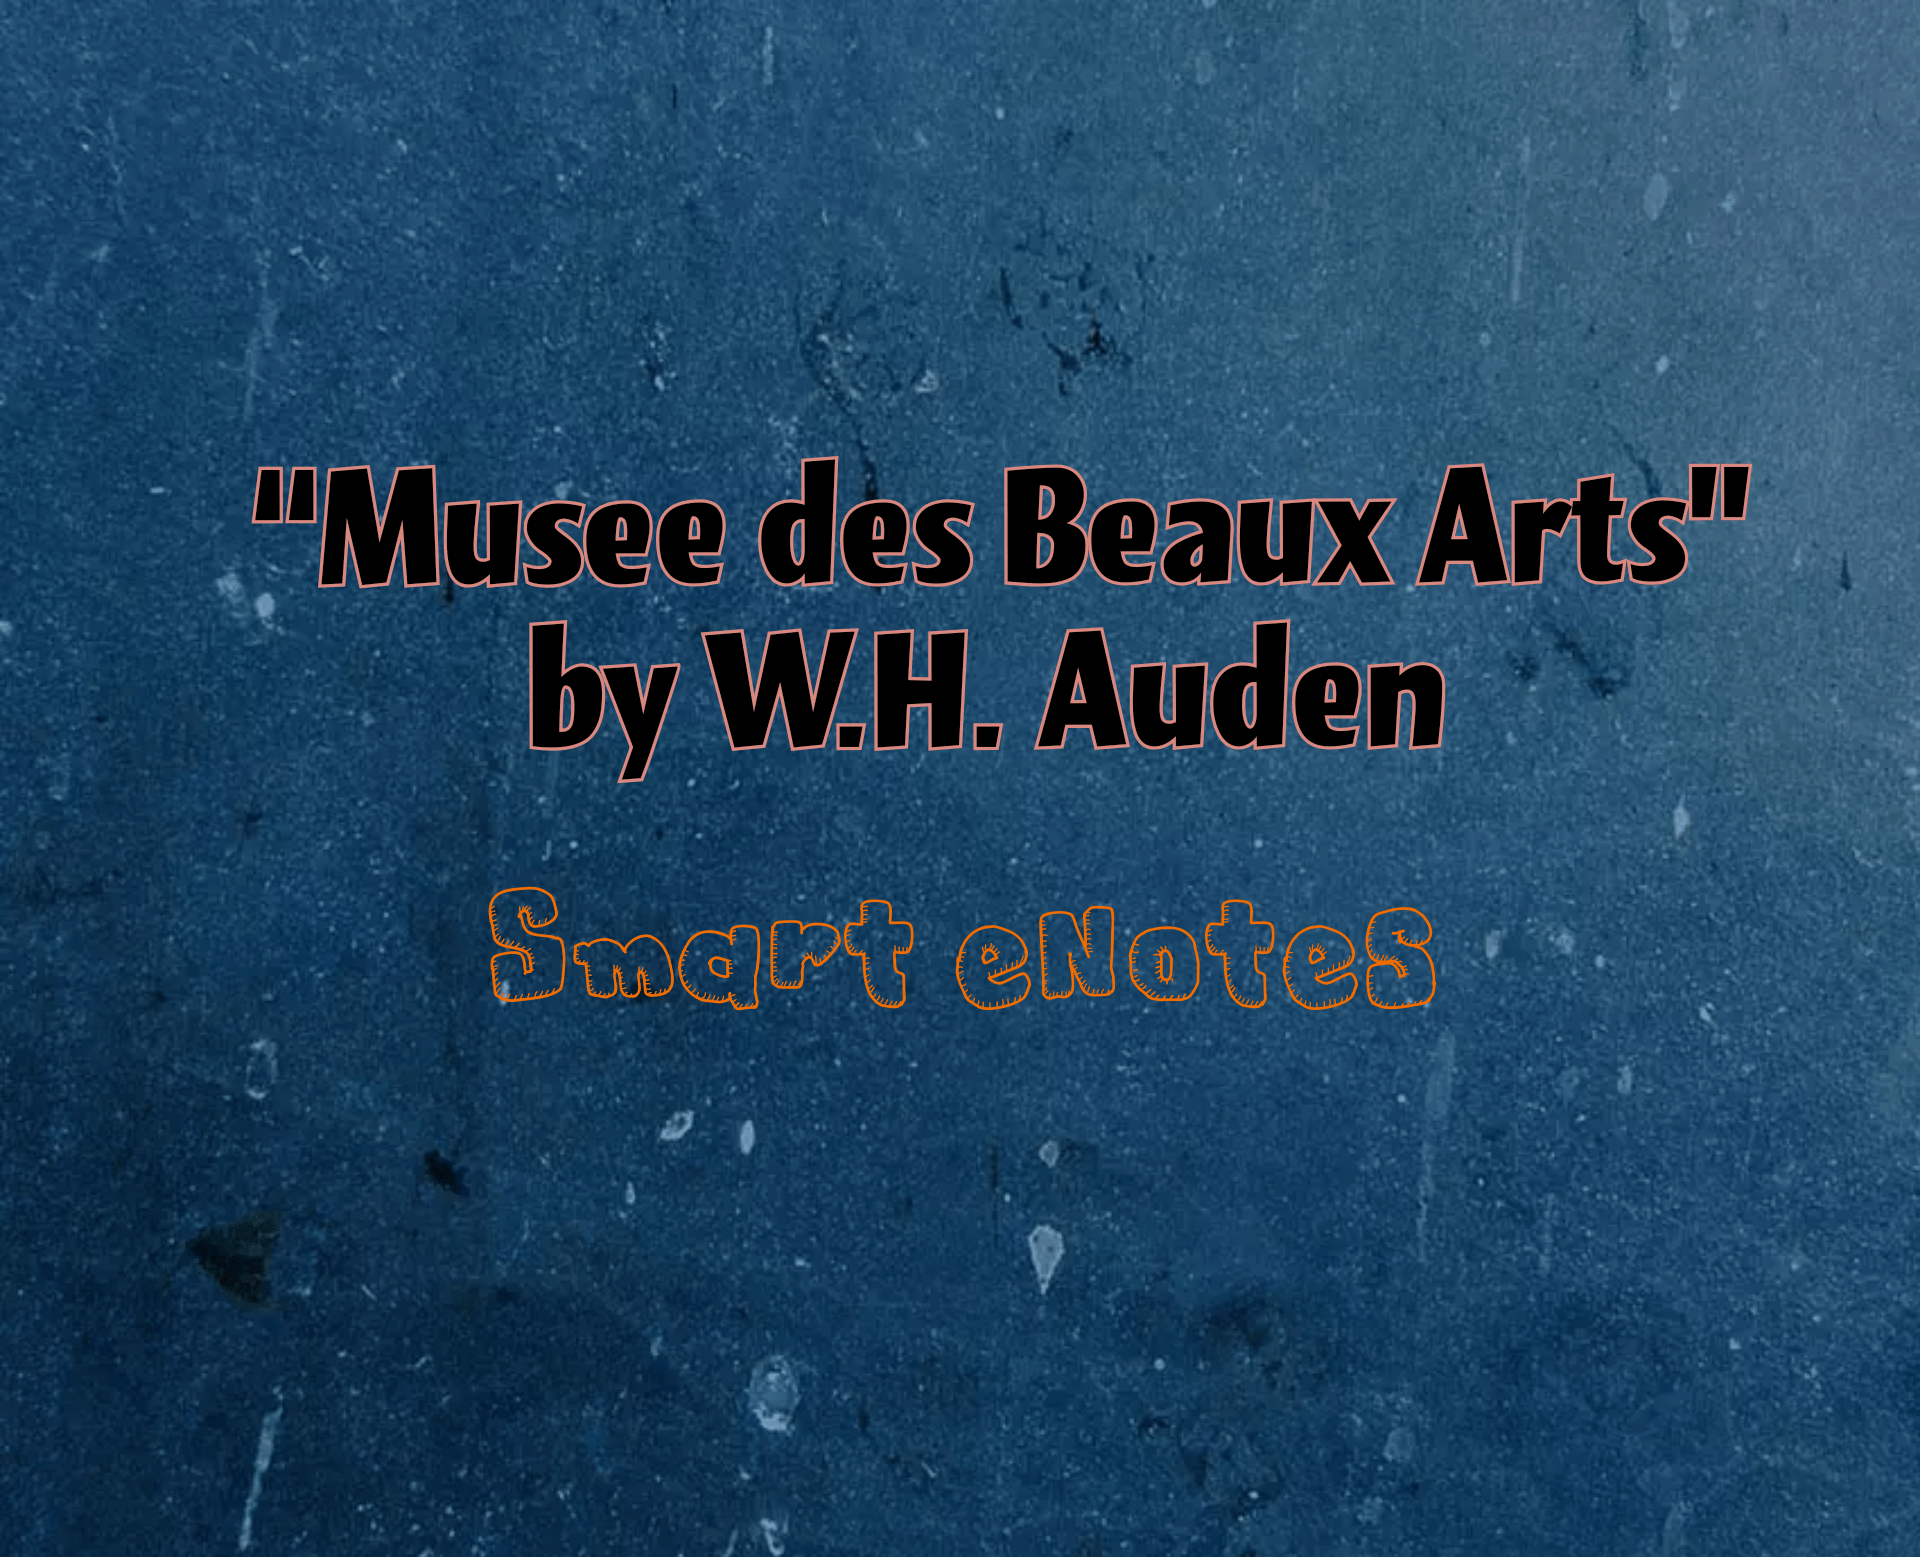 """Musee des Beaux Arts"" by W.H. Auden : Questions and Summary 2"